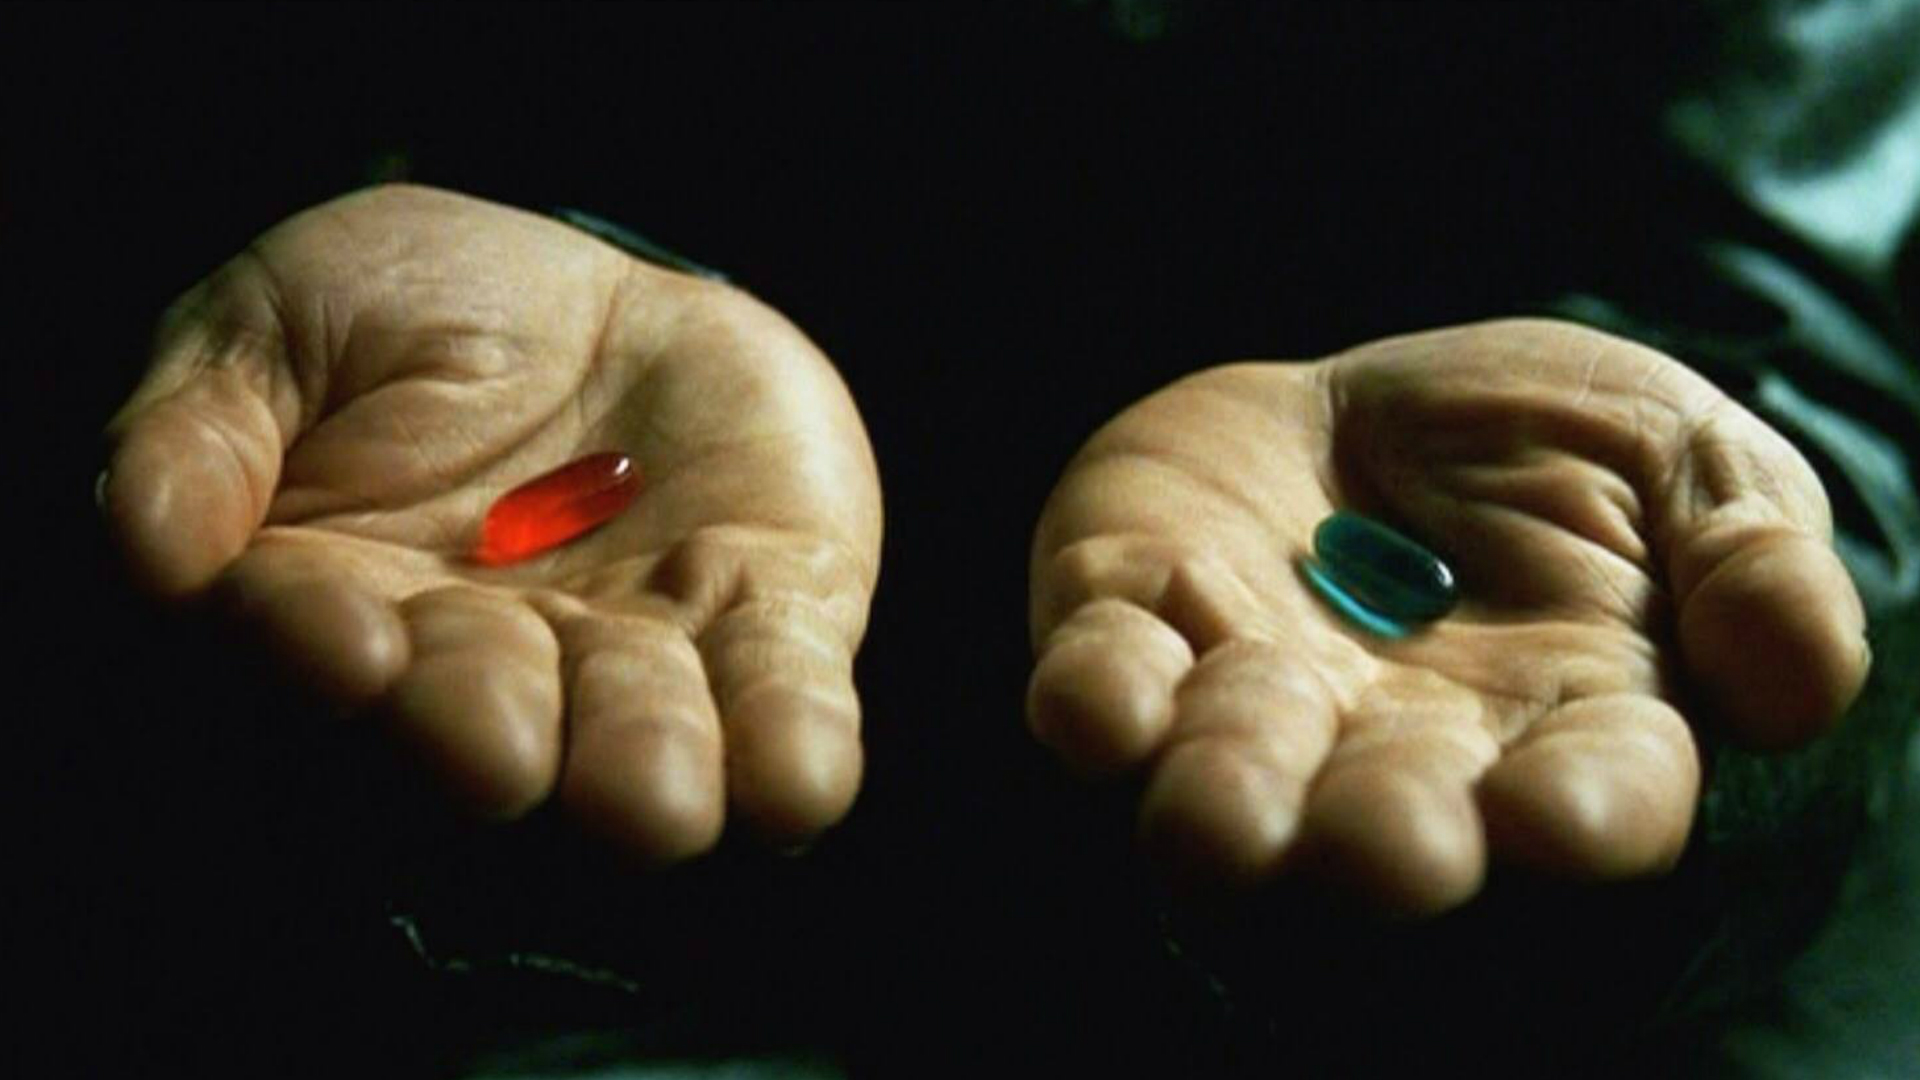 The Matrix red pill and blue pill